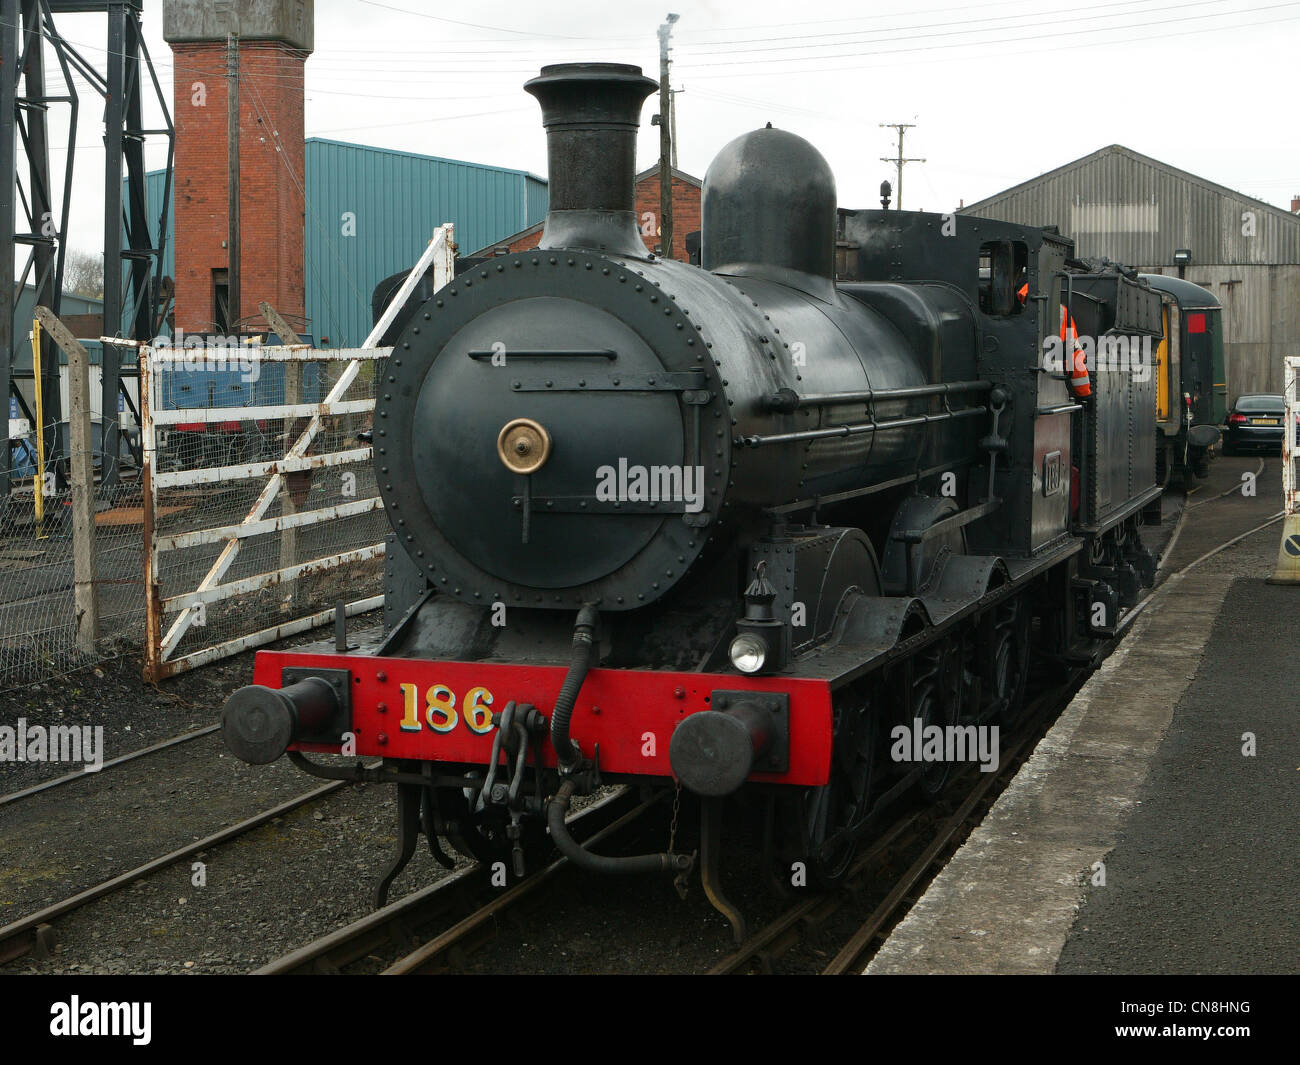 GSWR Steam Train, Engine 186 101 (CLASSIFIED J15 BY GREAT SOUTHERN RAILWAY. 1925) 0-6-0 - Stock Image